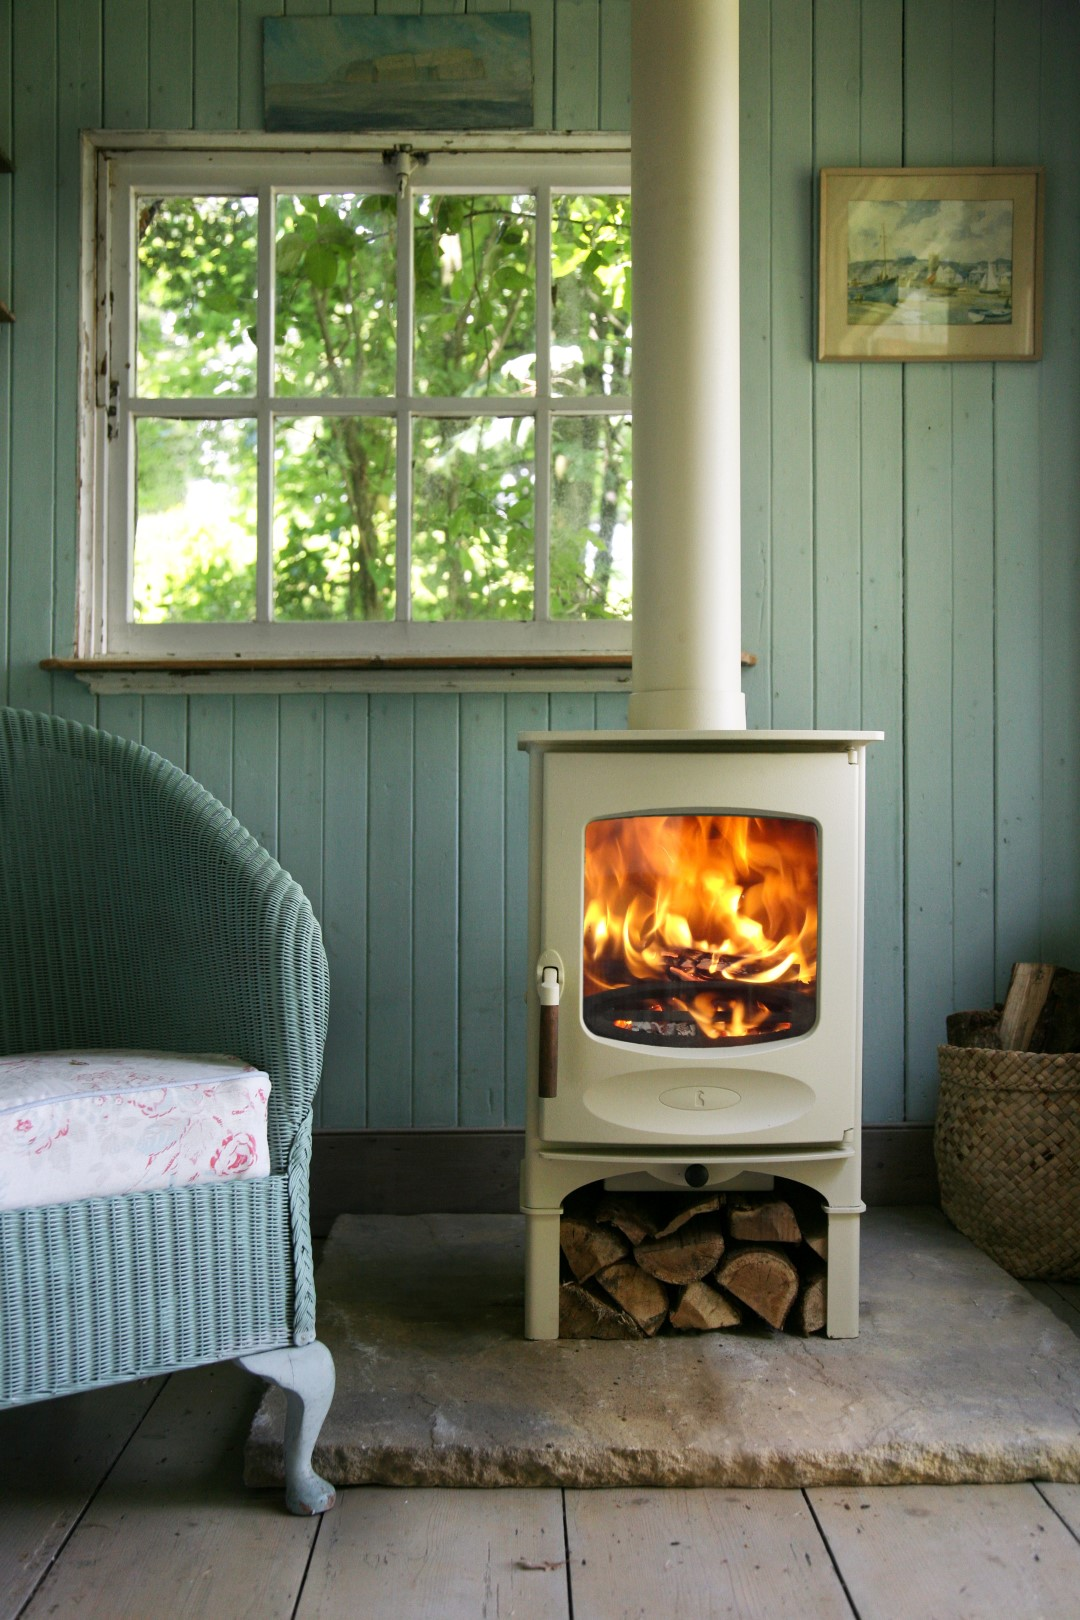 5 reasons to get your wood burning stove this summer